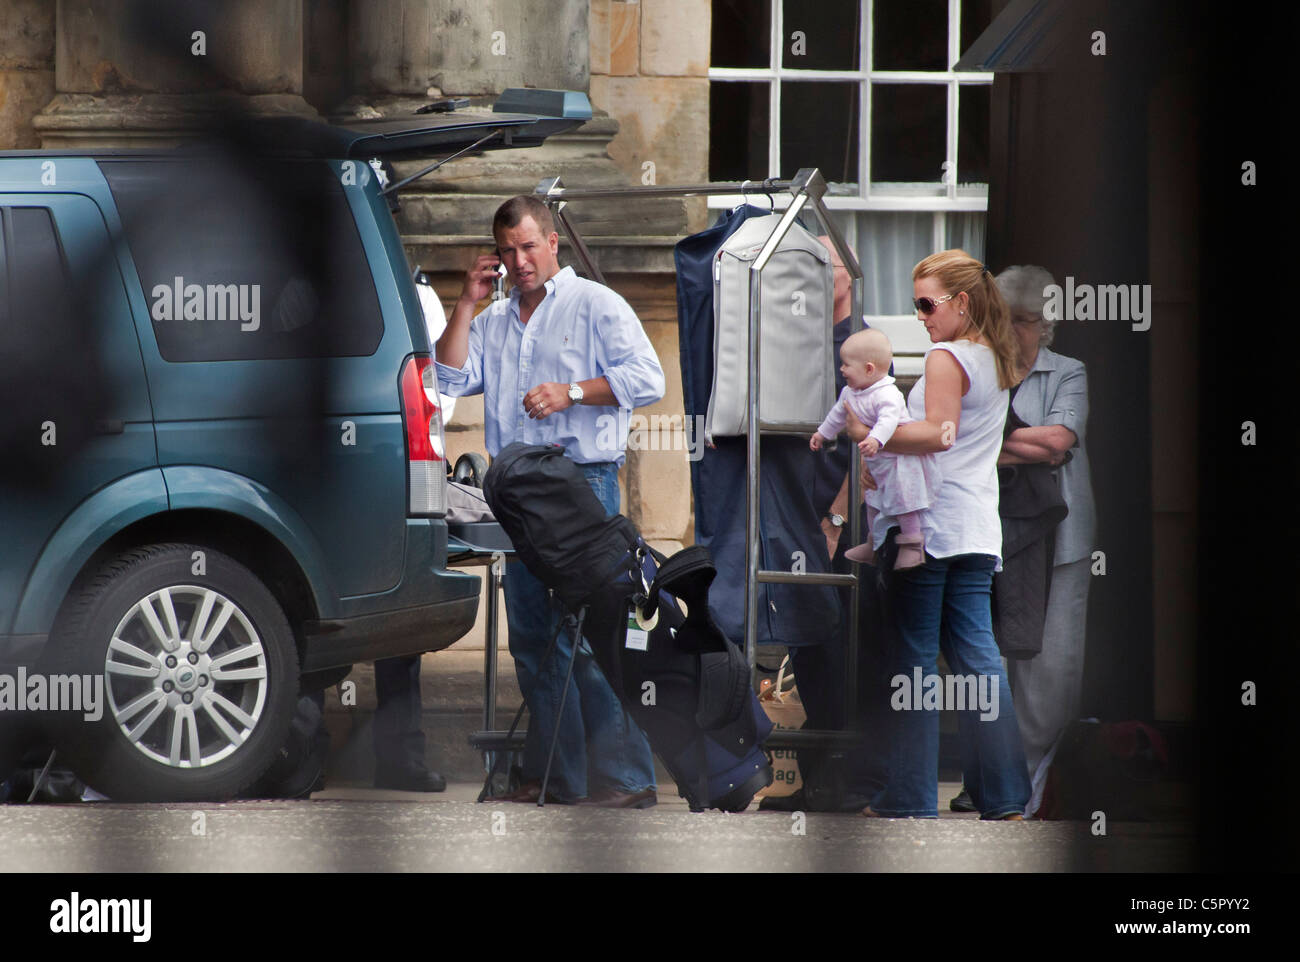 Peter Phillips and family leave the Palace of Holyroodhouse the day after his sister, Zara Phillips' wedding - Stock Image